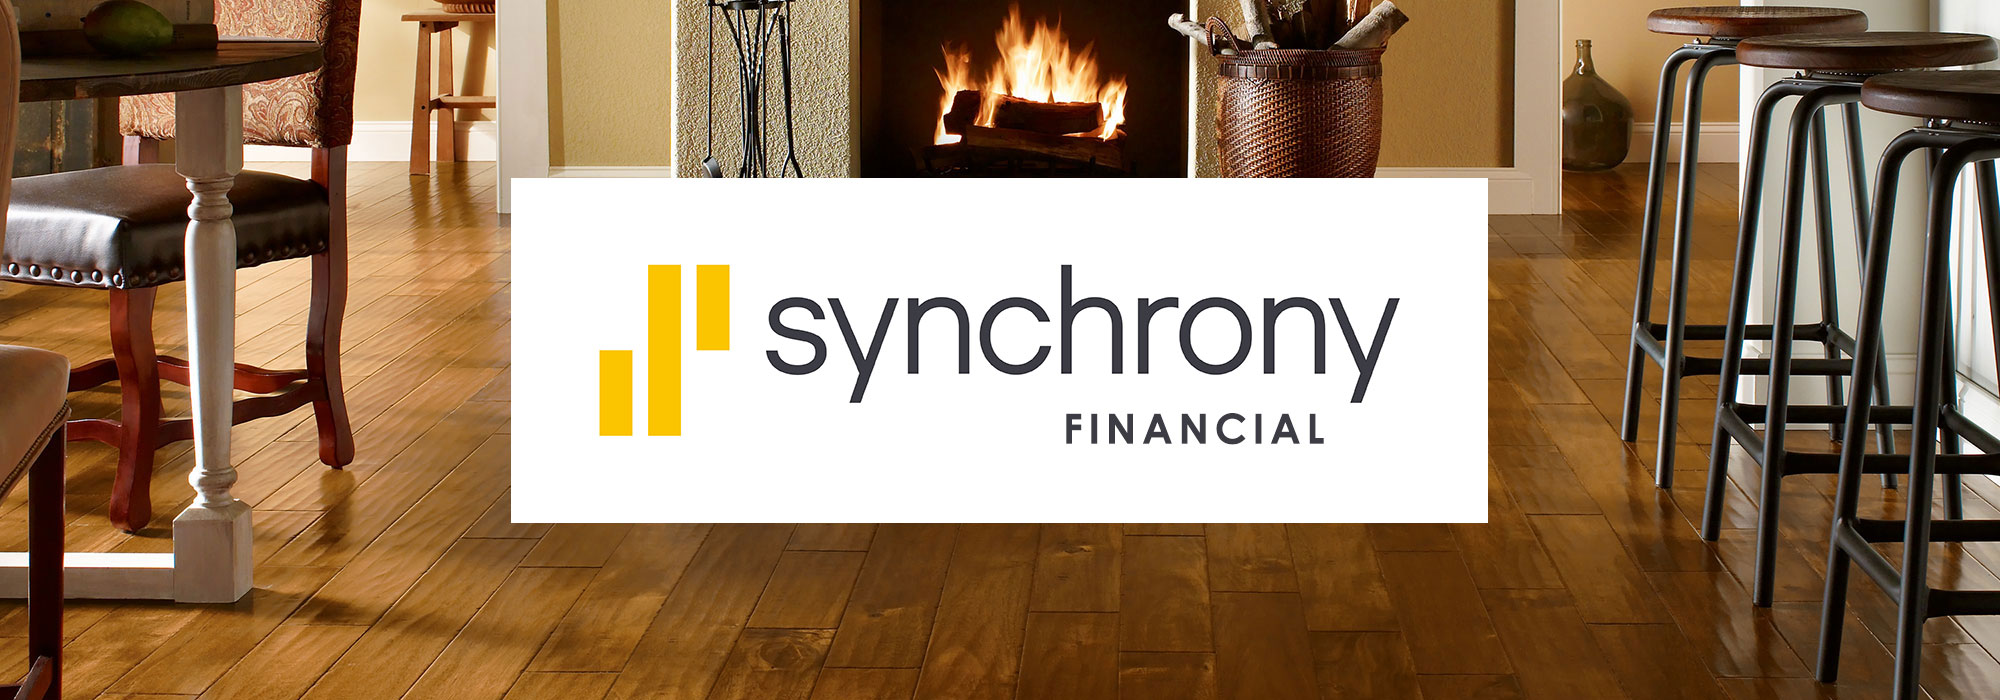 syncrony-banner